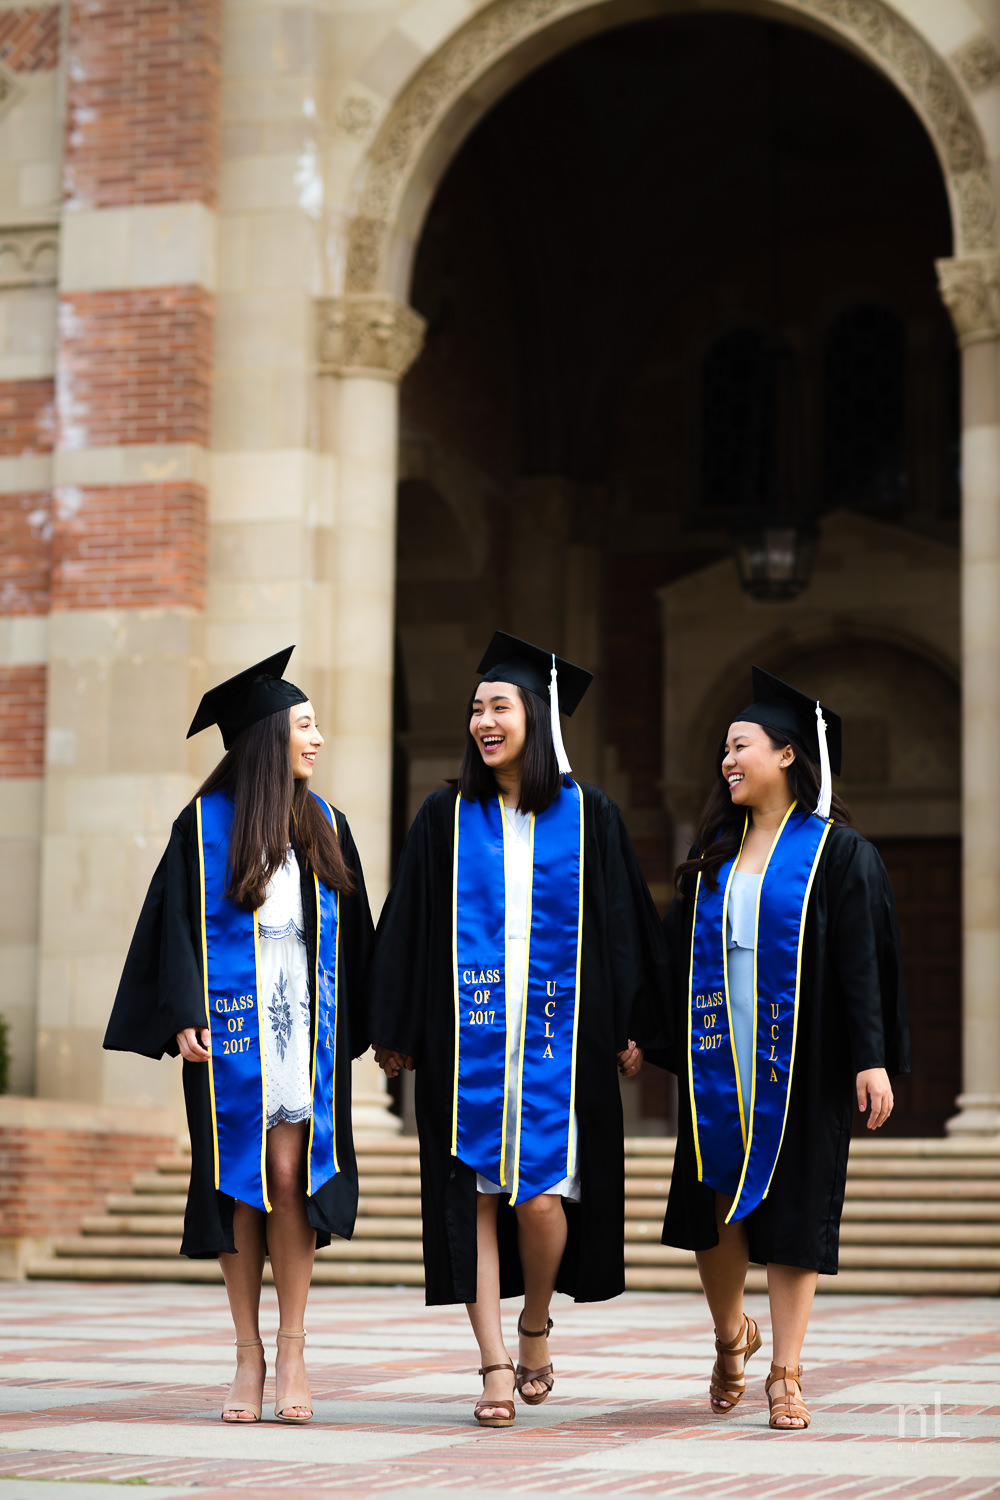 los angeles ucla senior graduation portrait cute smiling laughing best friends at royce hall in caps and gowns